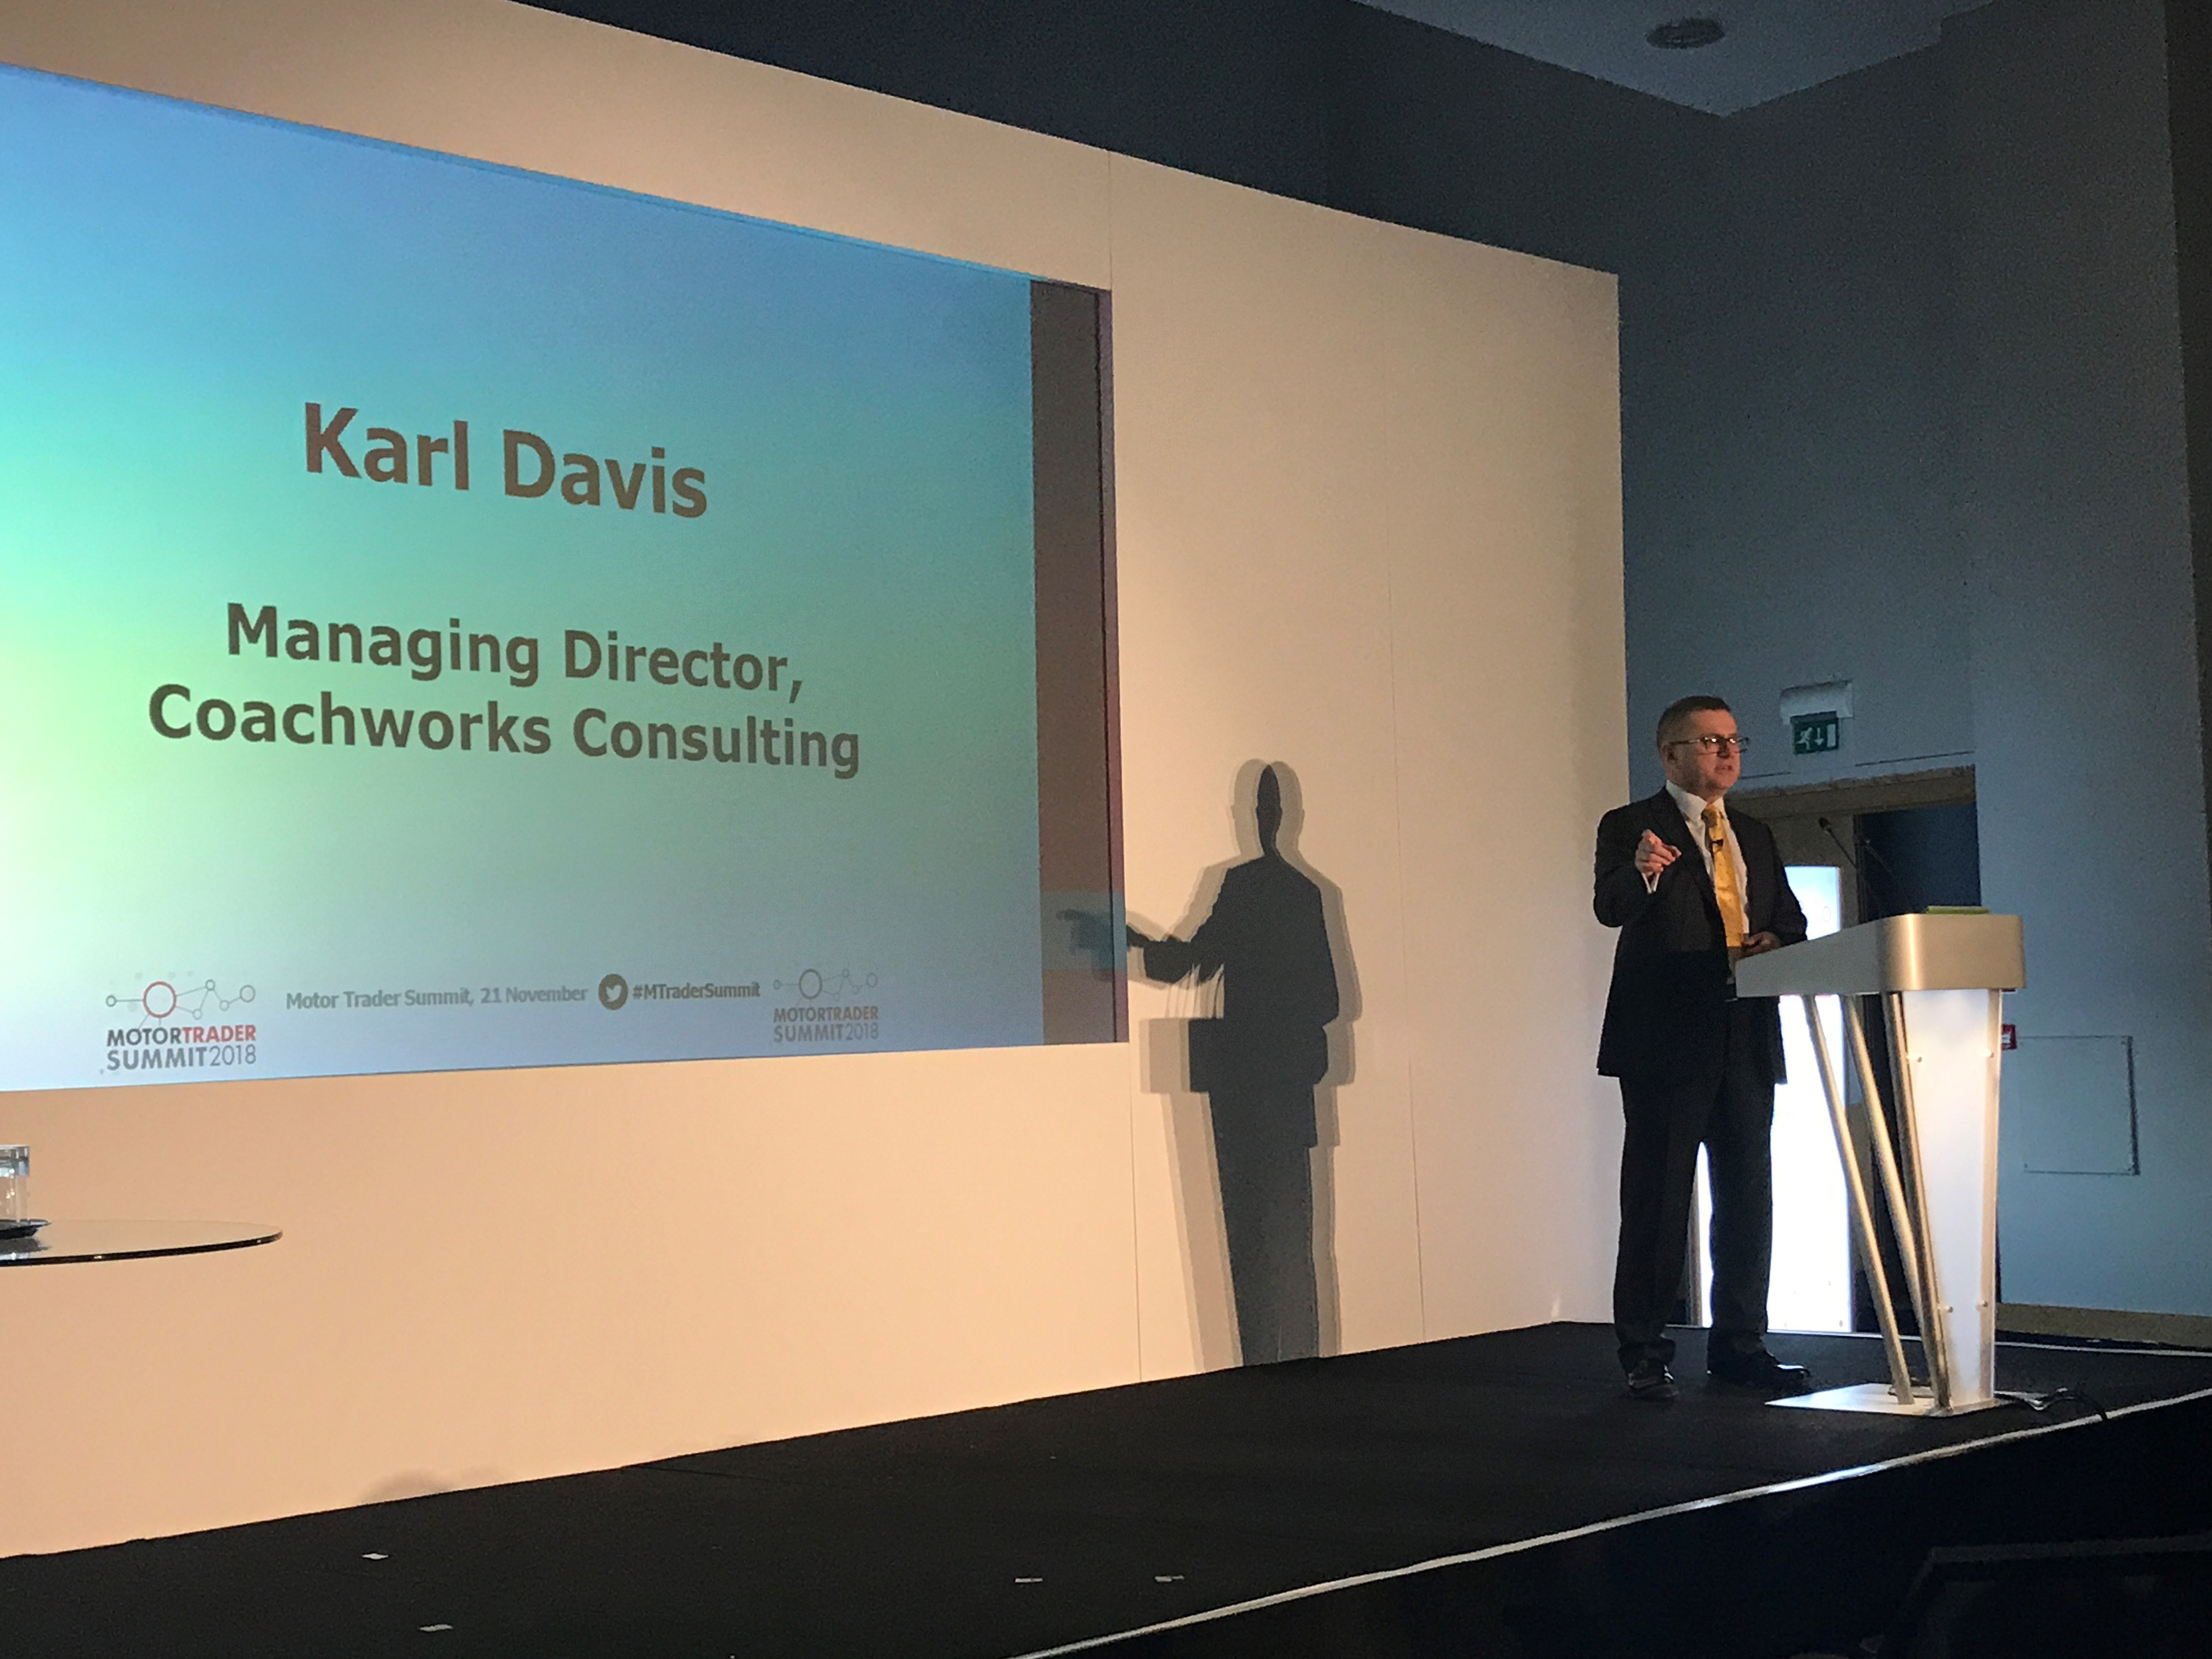 Managing Director Karl Davis talks about his recent speaking engagement at the Motor Trade Summit 2018